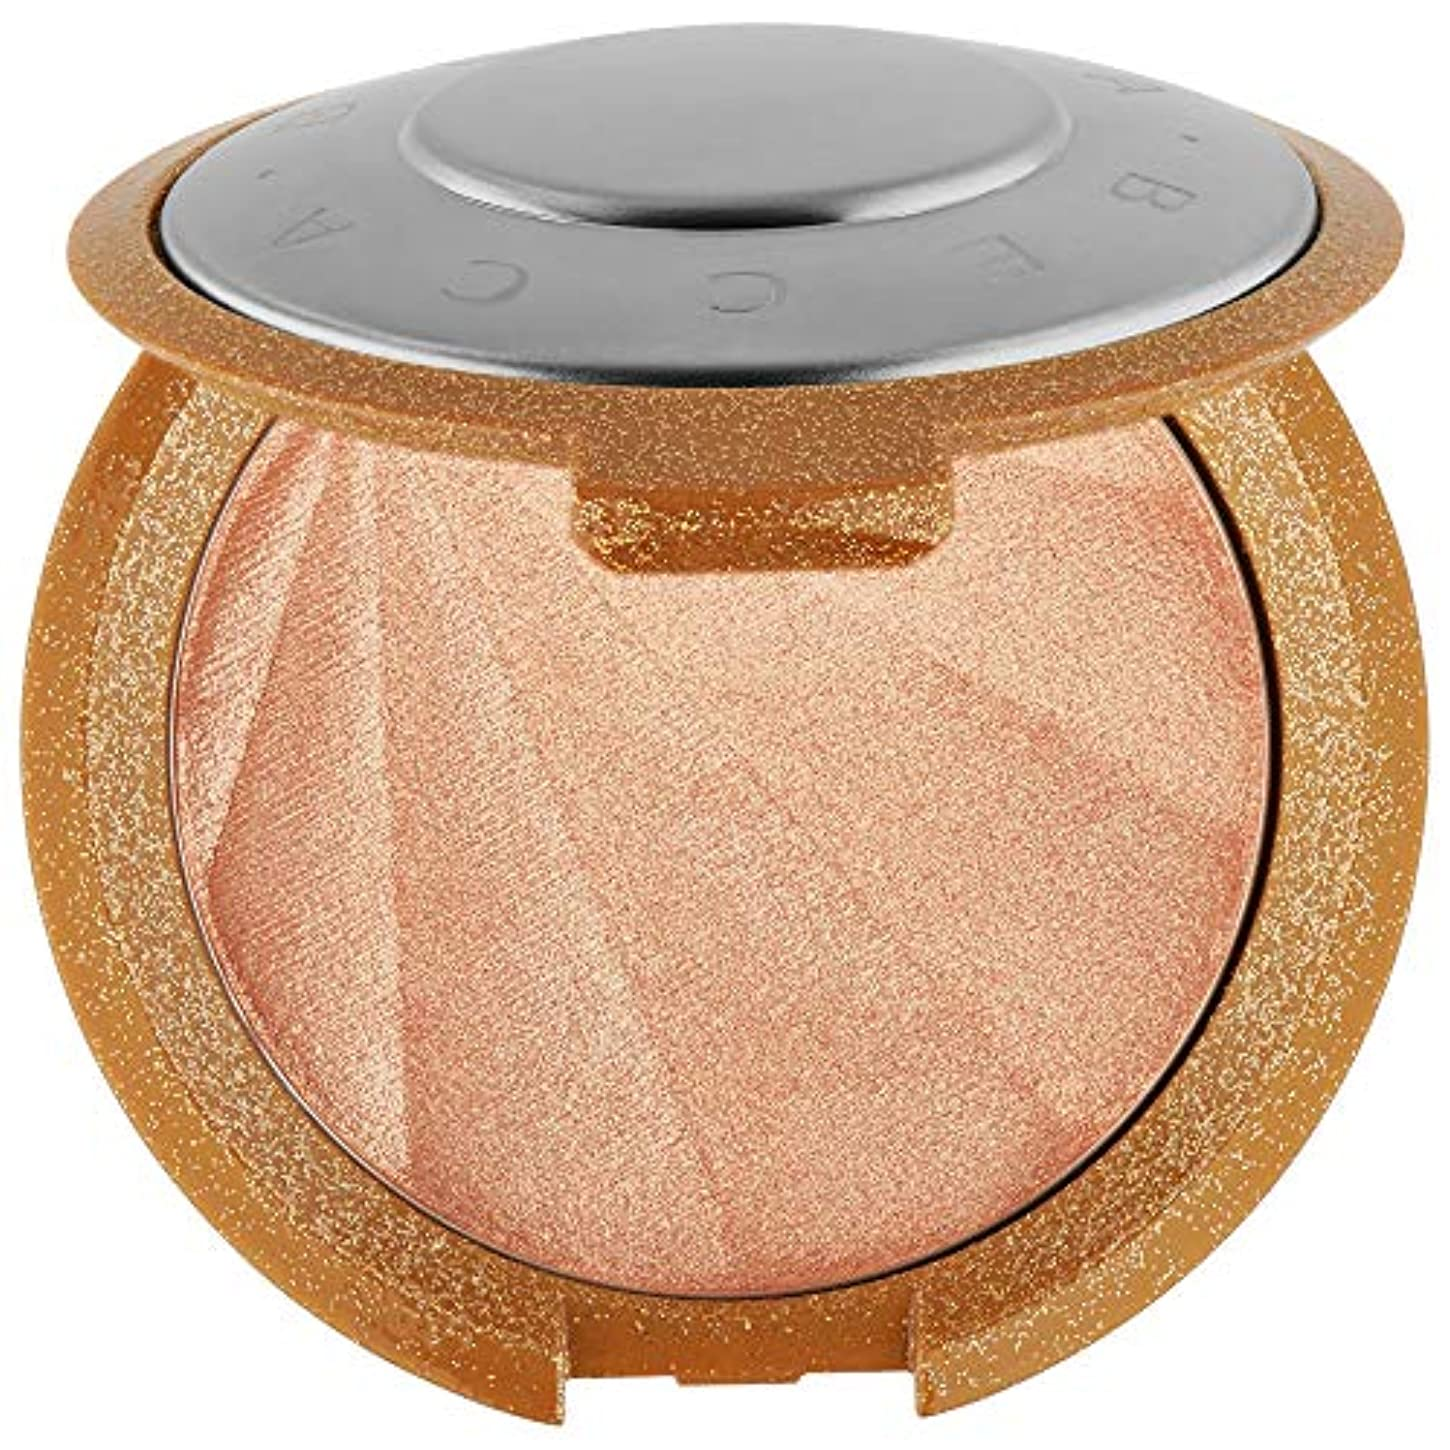 刃ジョージスティーブンソン回転するベッカ Shimmering Skin Perfector Pressed Powder - # Champagne Pop (Collector's Edition) 7g/0.25oz並行輸入品